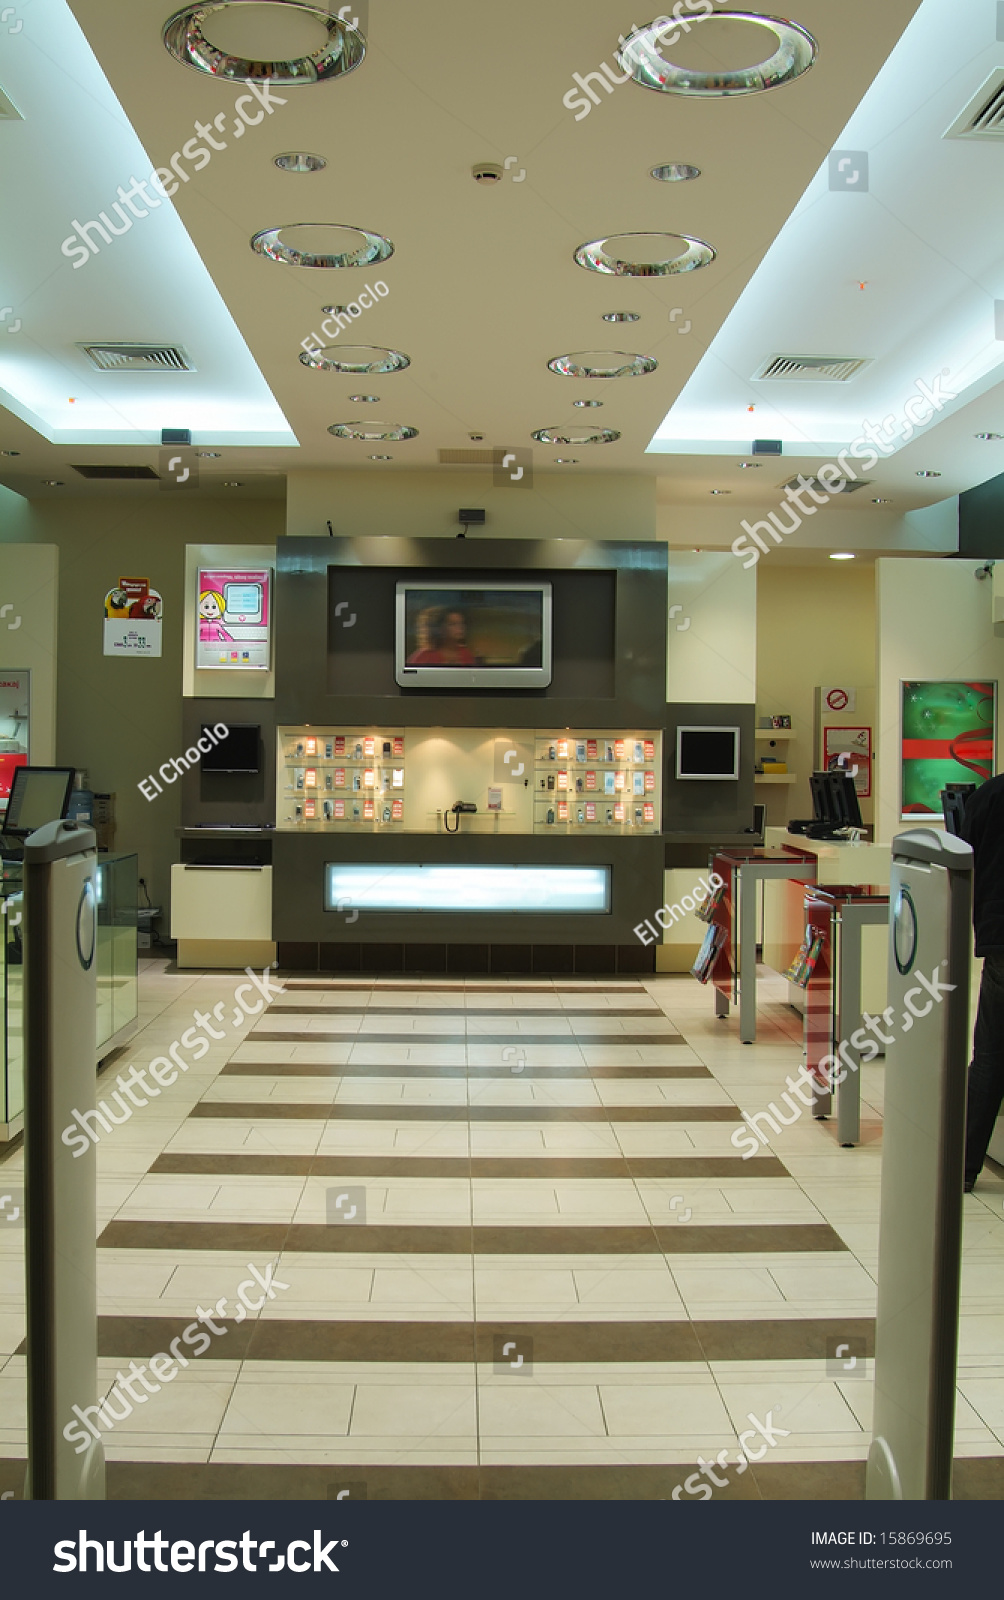 Modern Mobile Shop Interior Image Stock Photo Safe To Use 15869695